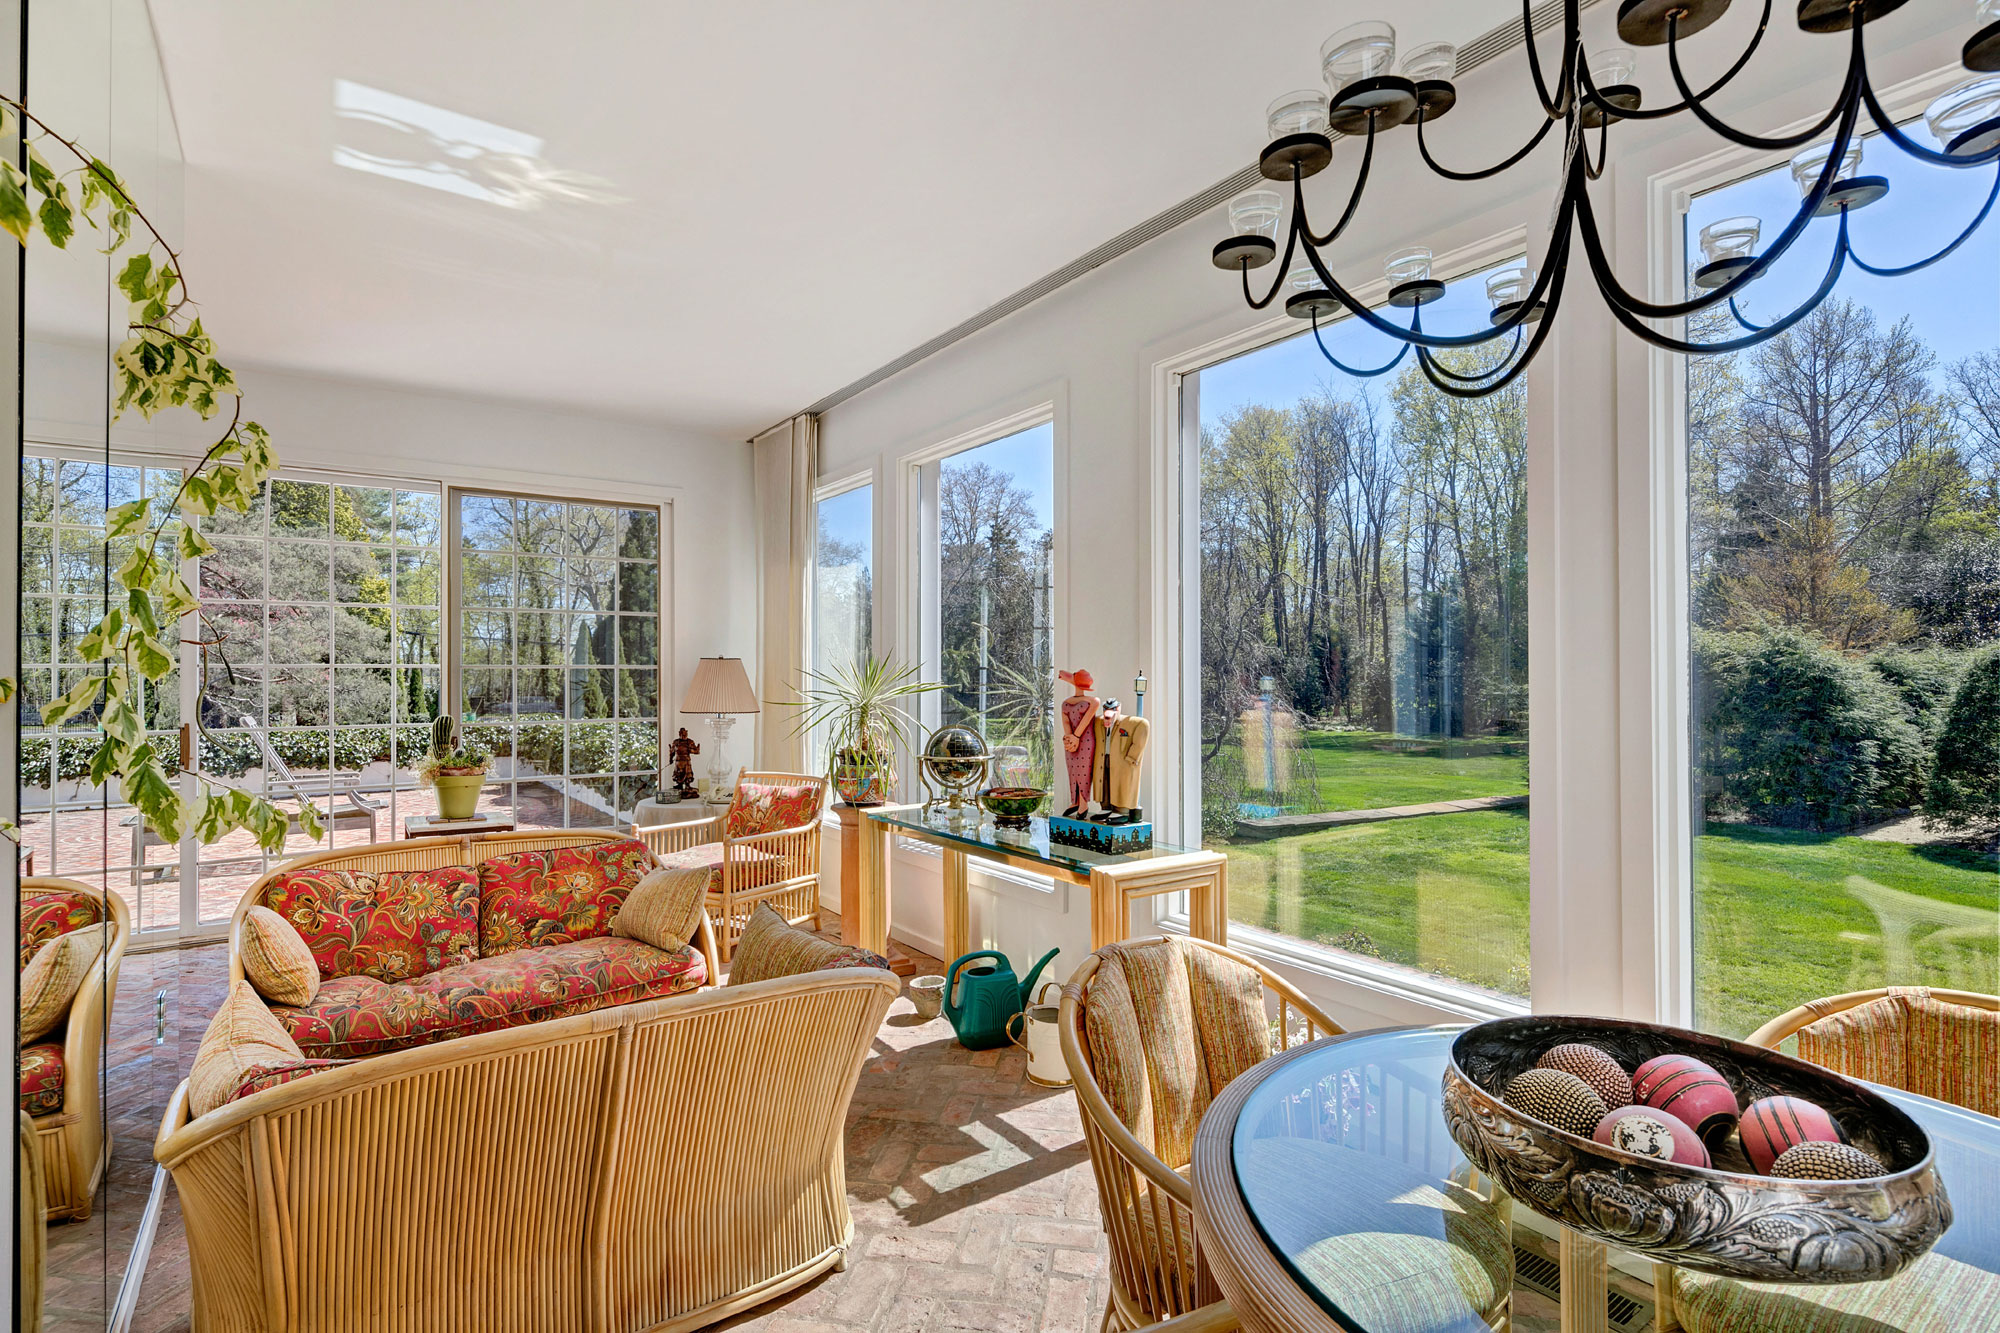 This New Jersey estate has a laid-back Californian aesthetic with its resort-like grounds and luxury amenities; the sunroom allows for perennial sunshine.